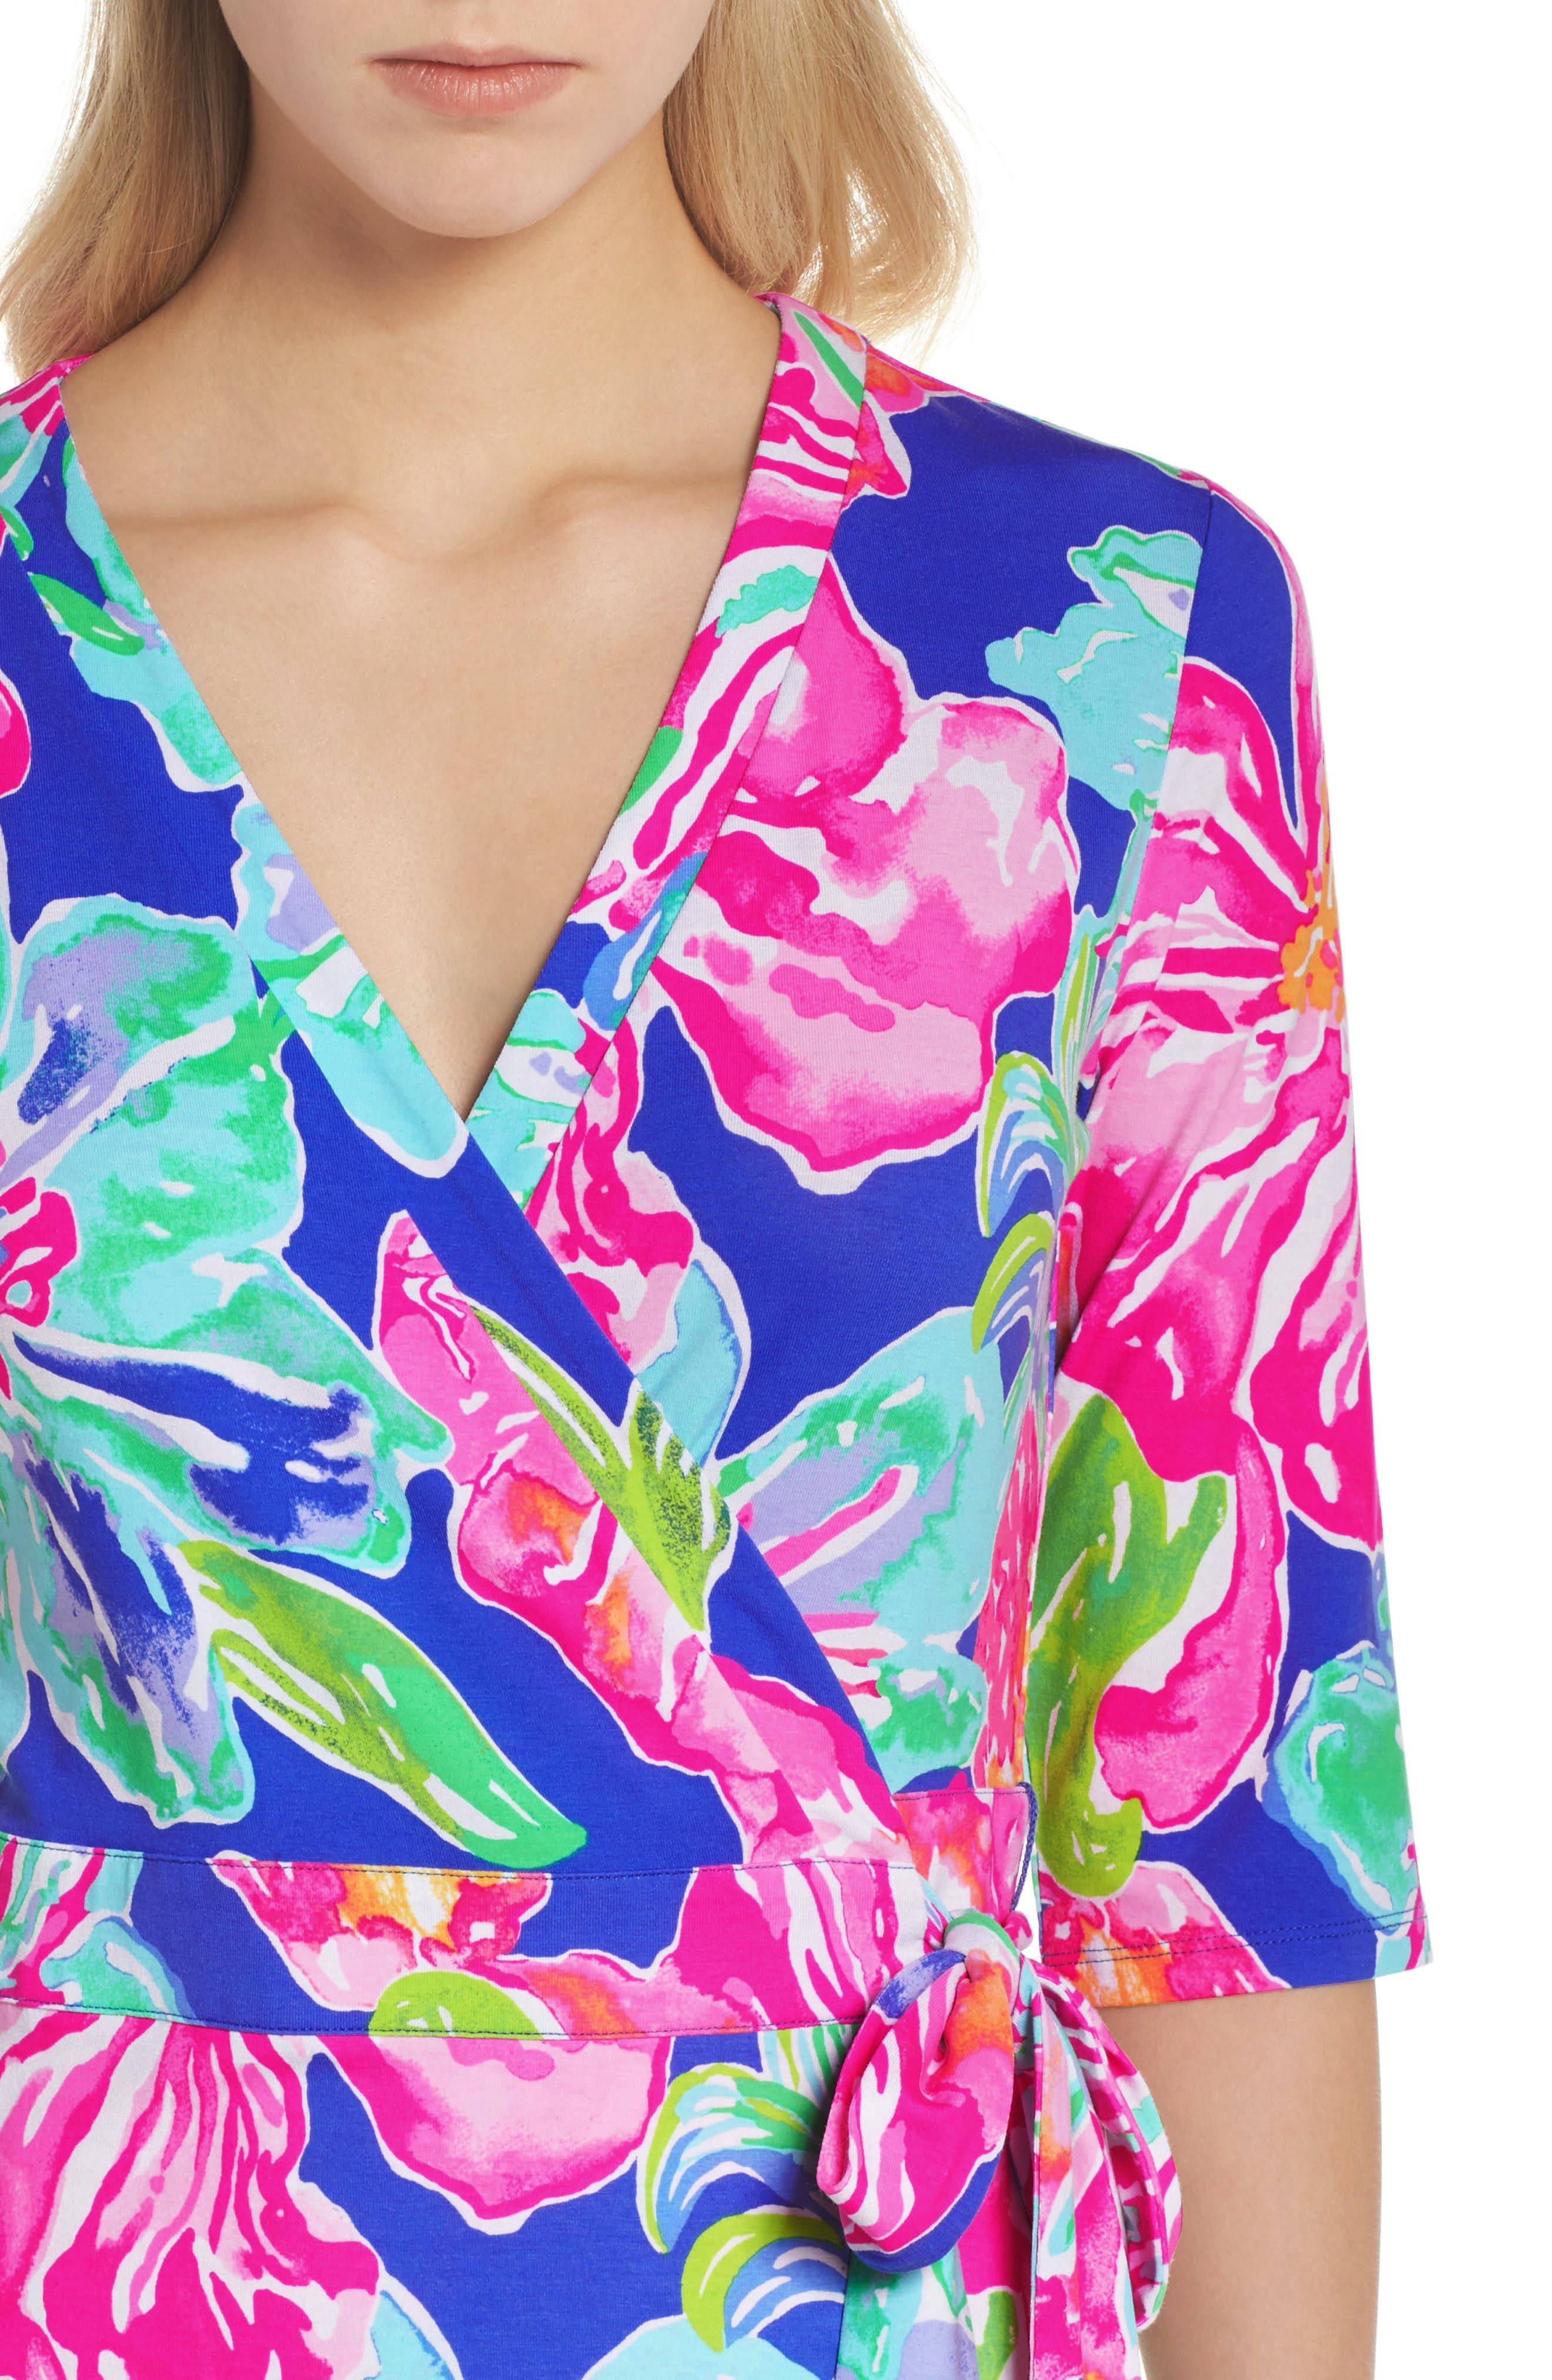 Marvista Wrap Dress,                             Alternate thumbnail 4, color,                             BECKON BLUE JUNGLE UTOPIA